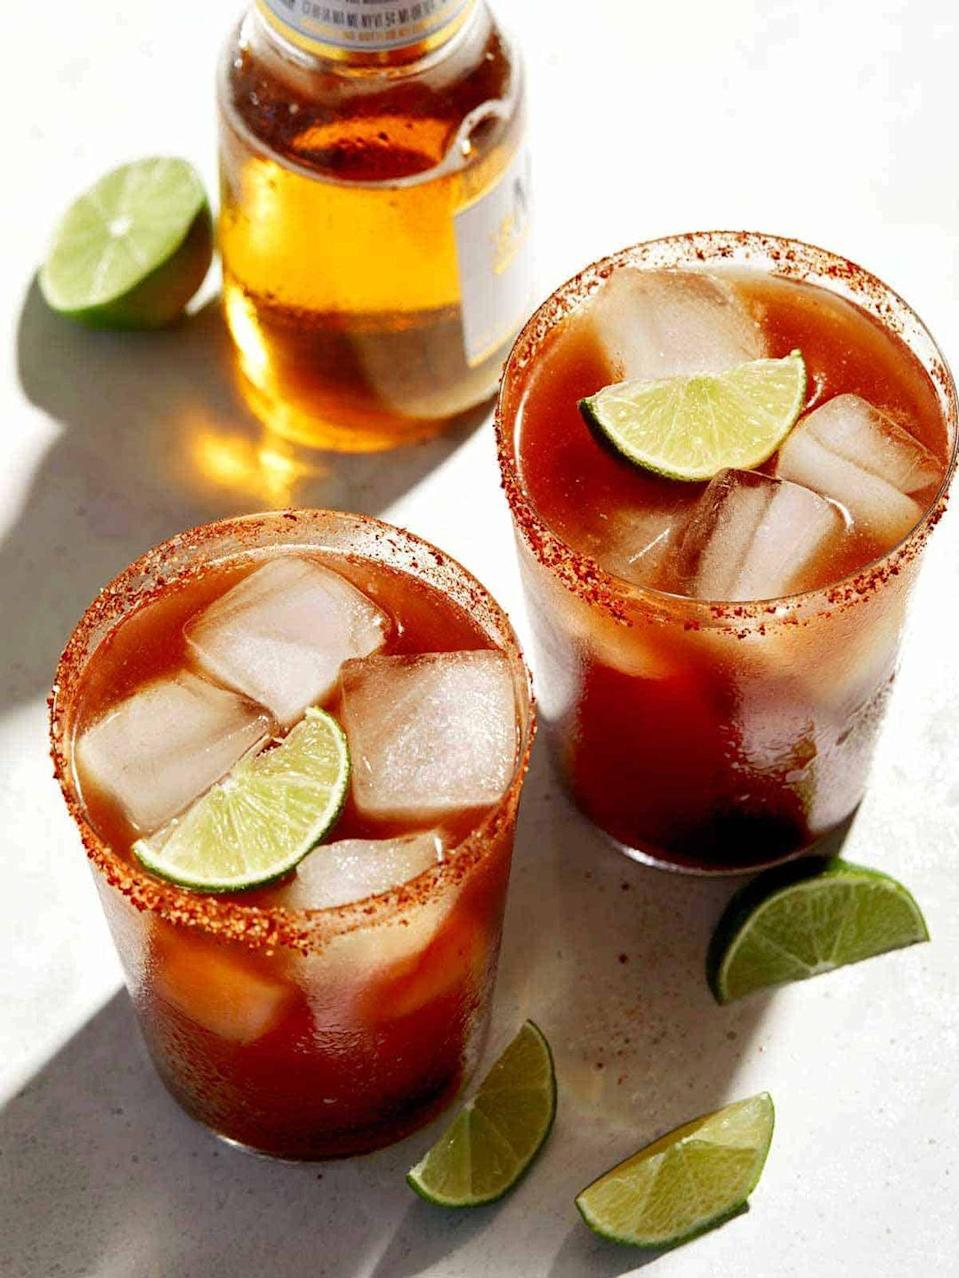 """<p>If you're more of a beer drinker, you'll love this tomato-based drink that uses beer instead of hard alcohol. To give it a special presentation, rim the glasses with a chile-lime seasoning such as <a href=""""https://www.thepioneerwoman.com/food-cooking/cooking-tips-tutorials/a35024143/tajin-seasoning/"""" rel=""""nofollow noopener"""" target=""""_blank"""" data-ylk=""""slk:Tajín"""" class=""""link rapid-noclick-resp"""">Tajín</a>.</p><p><strong>Get the recipe at <a href=""""https://www.spoonforkbacon.com/spicy-michelada/#wprm-recipe-container-18163"""" rel=""""nofollow noopener"""" target=""""_blank"""" data-ylk=""""slk:Spoon Fork Bacon"""" class=""""link rapid-noclick-resp"""">Spoon Fork Bacon</a>.</strong></p><p><a class=""""link rapid-noclick-resp"""" href=""""https://go.redirectingat.com?id=74968X1596630&url=https%3A%2F%2Fwww.walmart.com%2Fsearch%2F%3Fquery%3Dbottle%2Bopener&sref=https%3A%2F%2Fwww.thepioneerwoman.com%2Ffood-cooking%2Fmeals-menus%2Fg36432840%2Ffourth-of-july-drinks%2F"""" rel=""""nofollow noopener"""" target=""""_blank"""" data-ylk=""""slk:SHOP BOTTLE OPENERS"""">SHOP BOTTLE OPENERS</a></p>"""